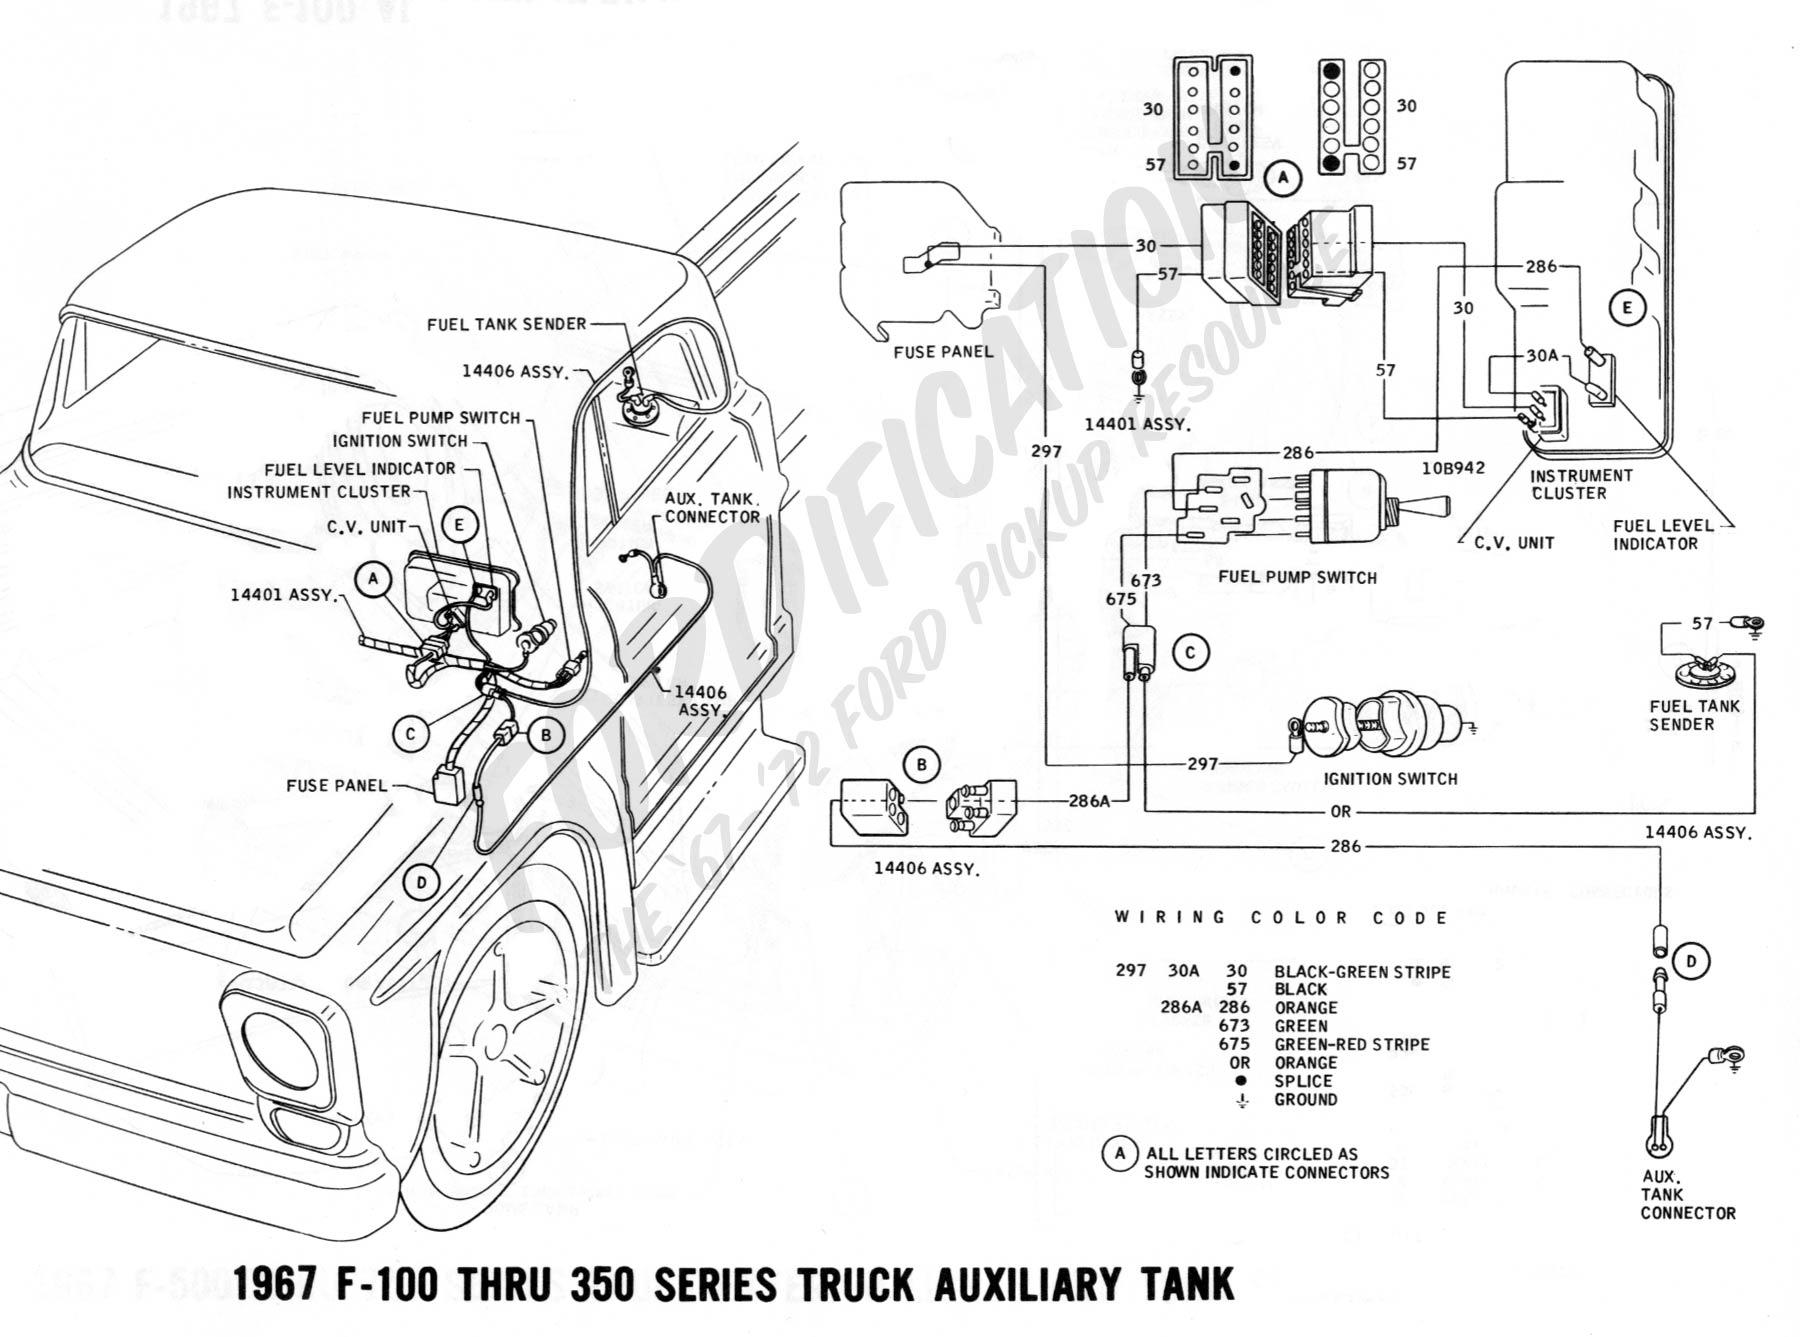 wiring 1967auxtank ford truck technical drawings and schematics section h wiring Wire Gauge at crackthecode.co